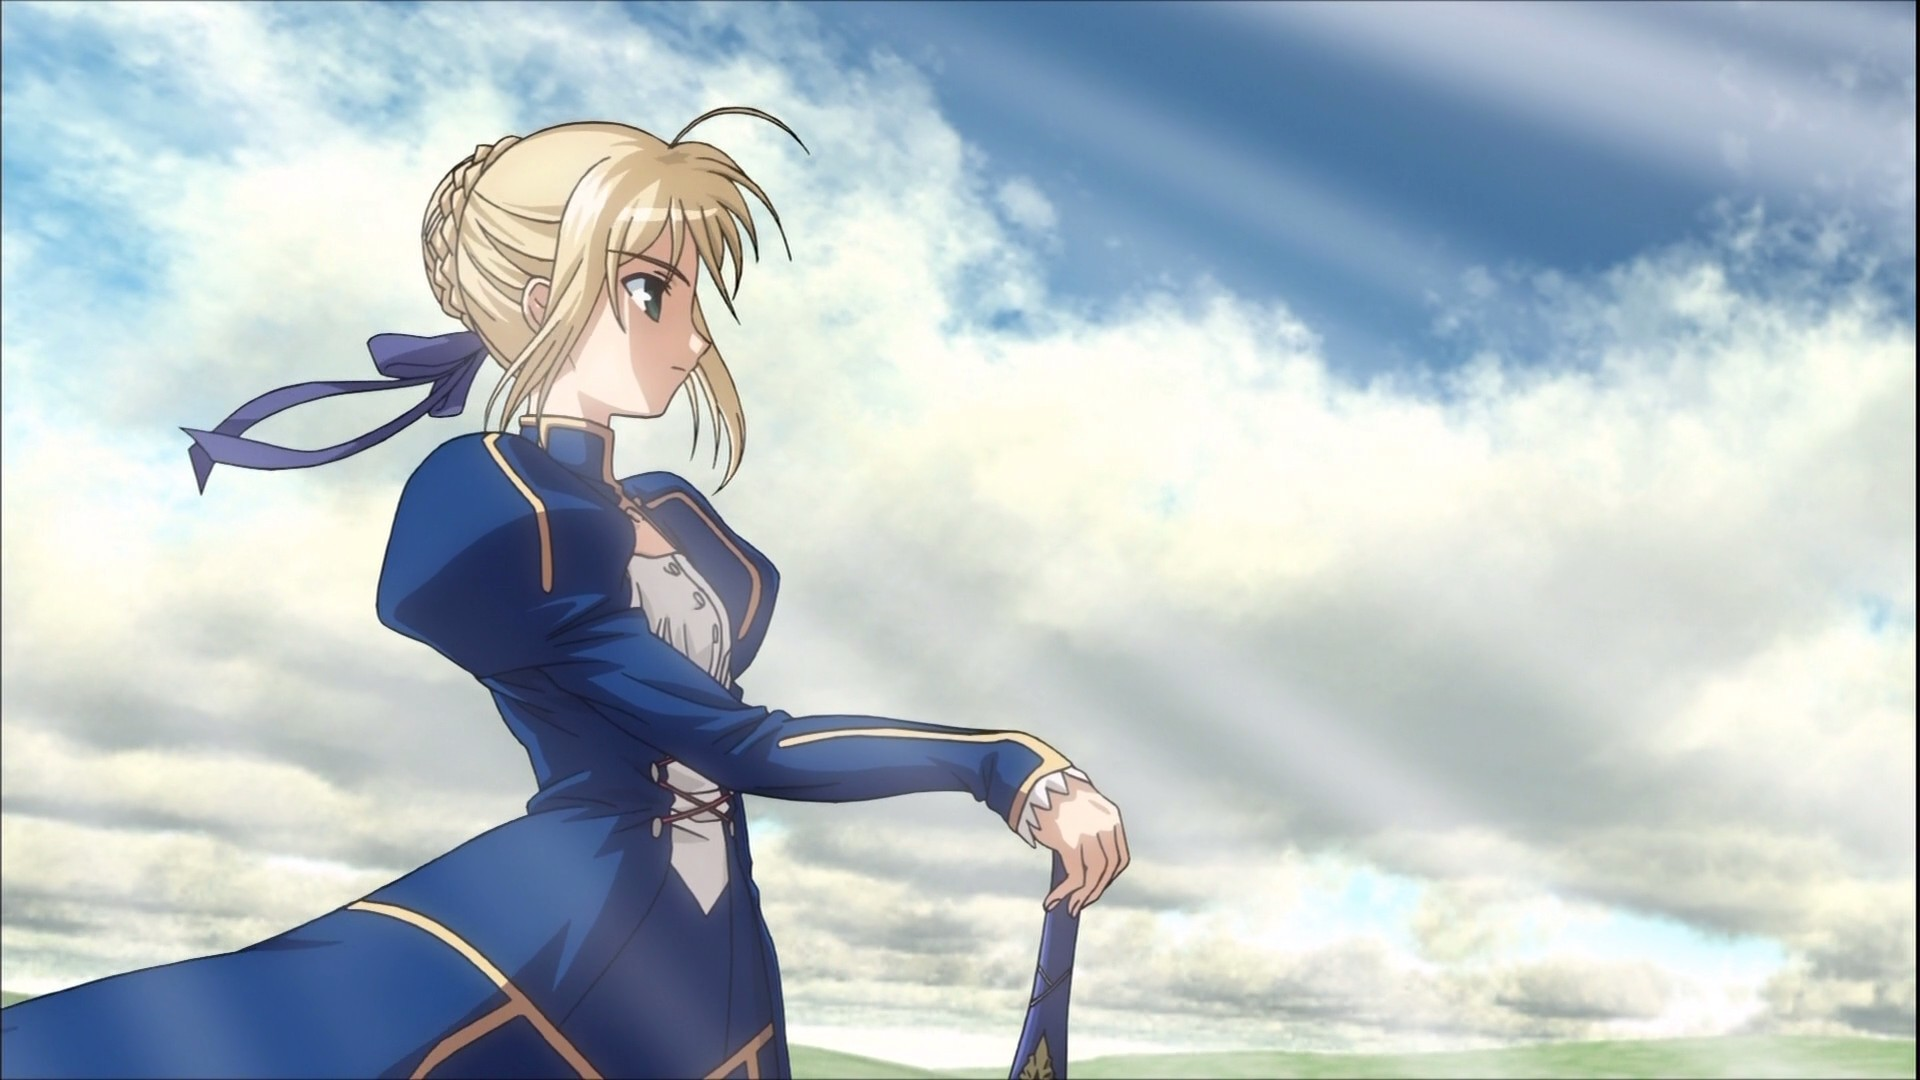 fate stay night saber wallpapers   DriverLayer Search Engine 1920x1080